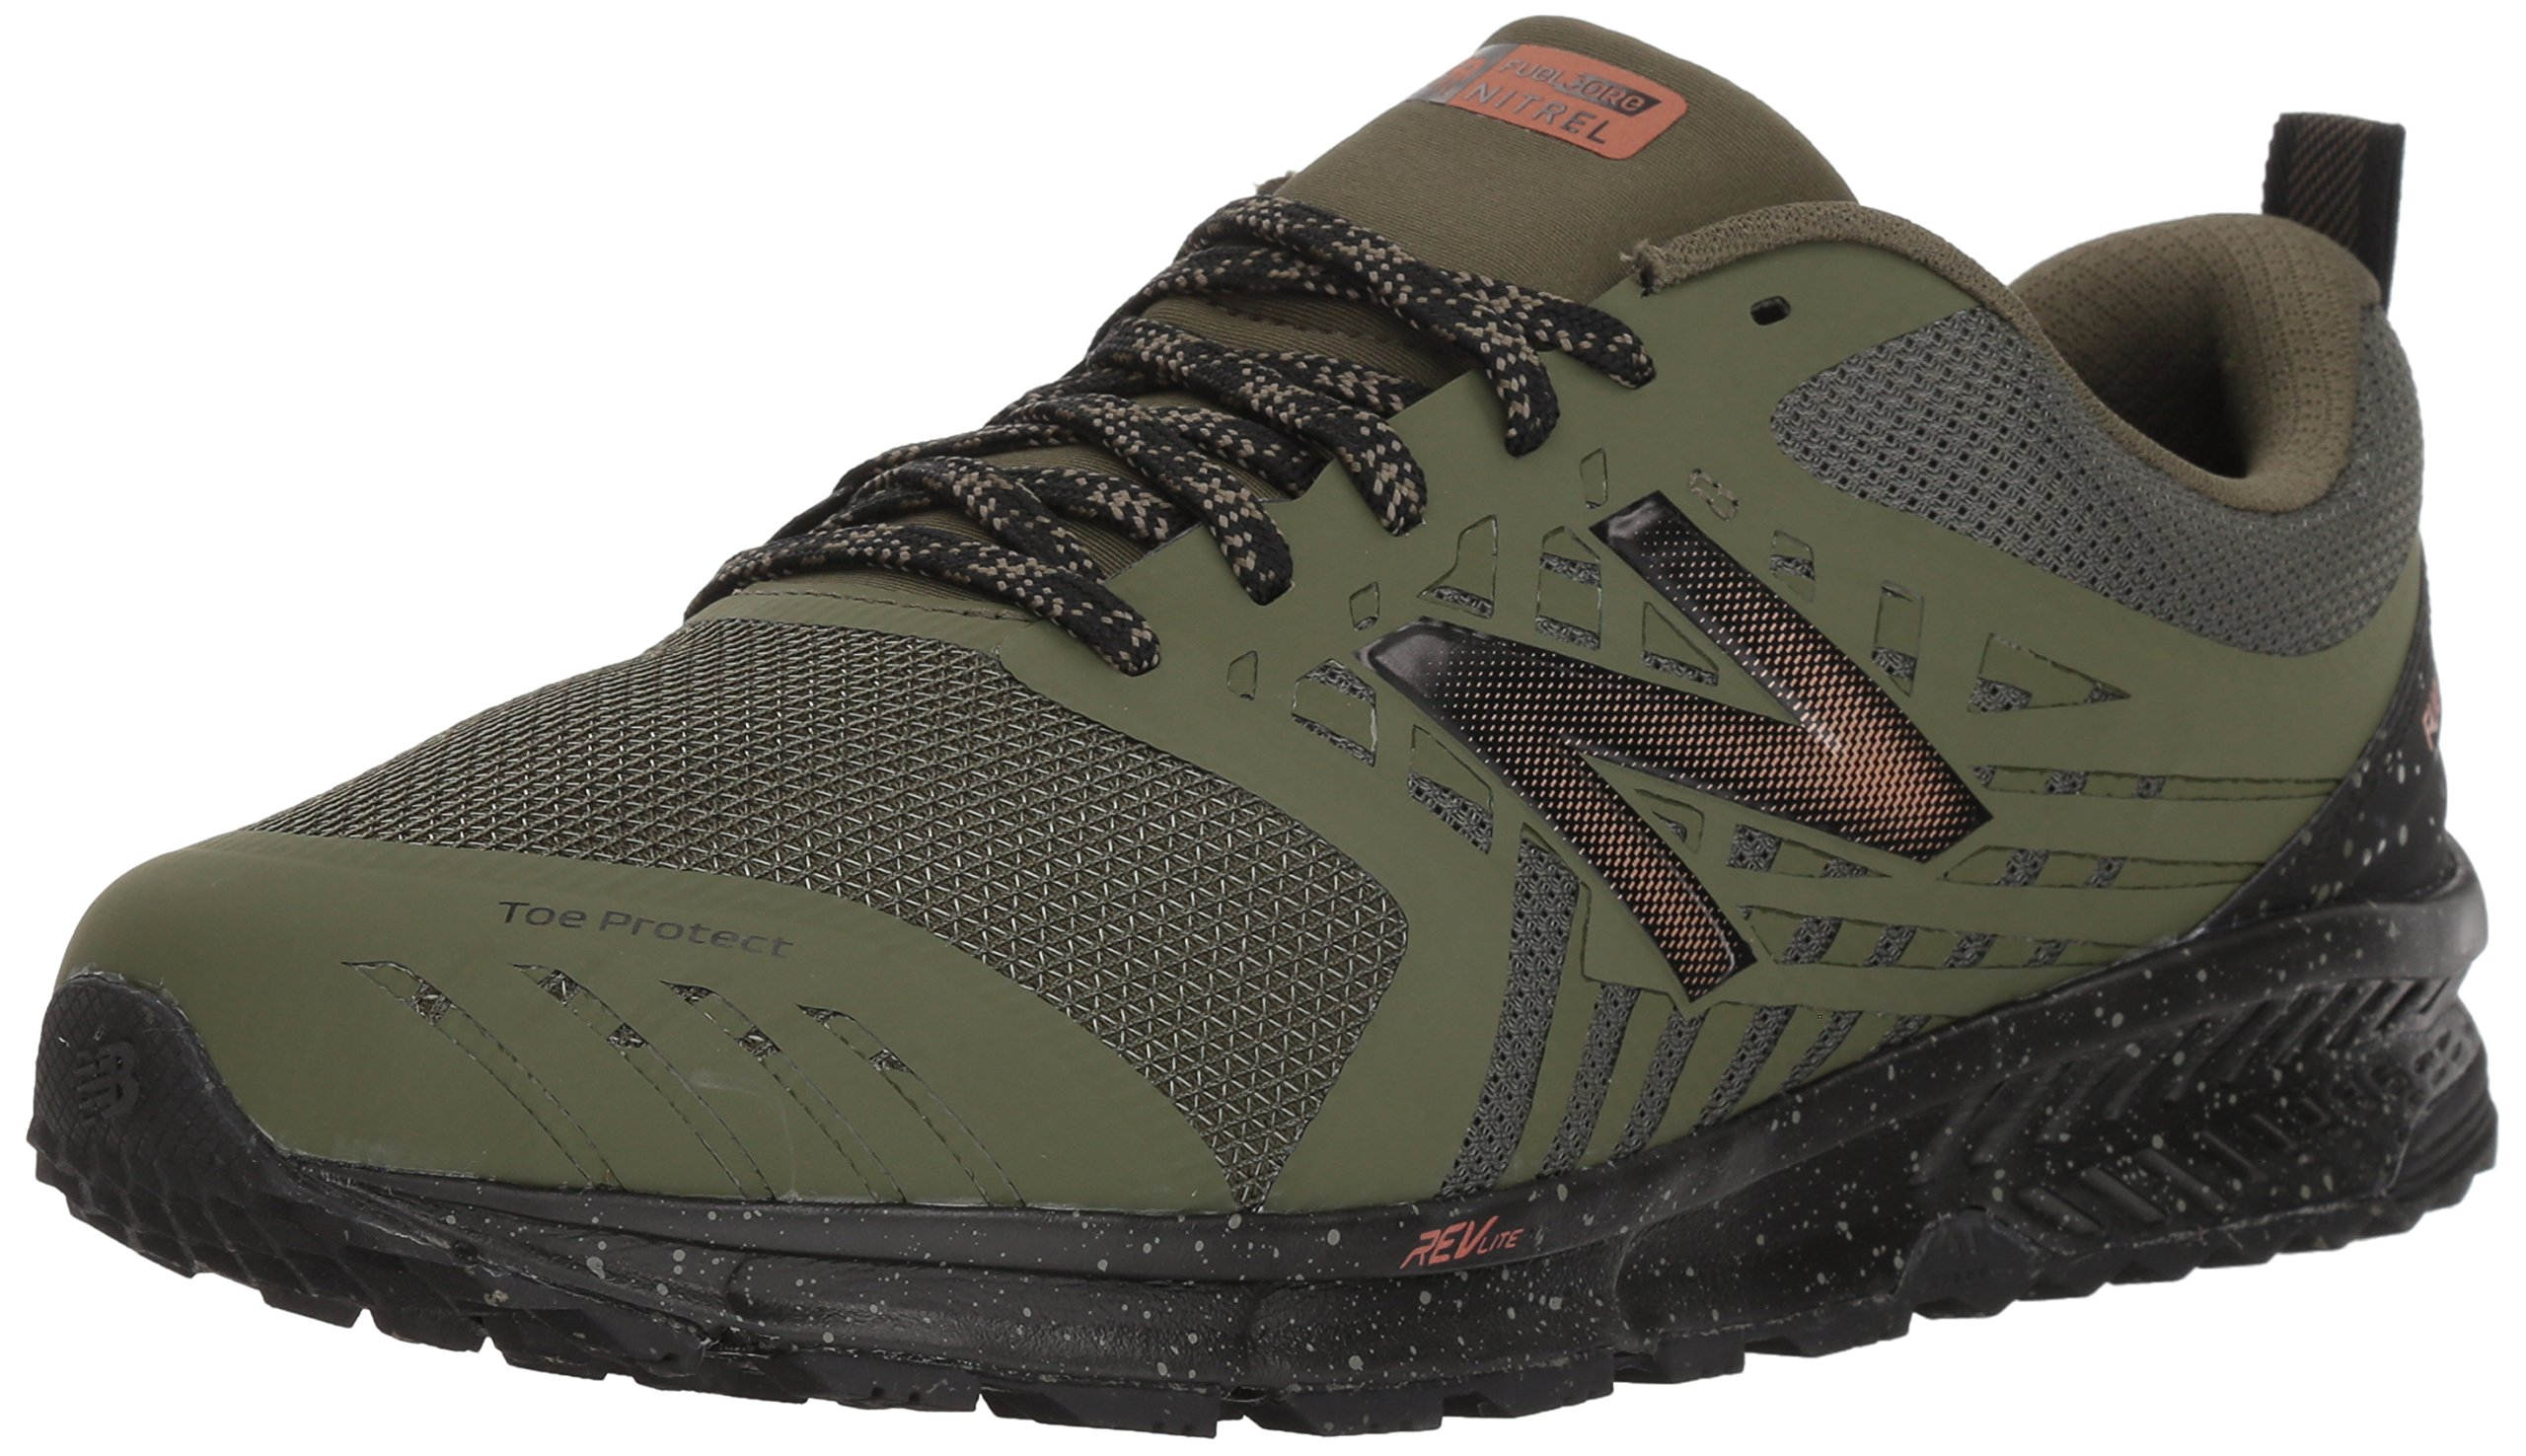 New Balance Men's Nitrel v1 FuelCore Trail Running Shoe, Dark Covert Green, 8.5 D US by New Balance